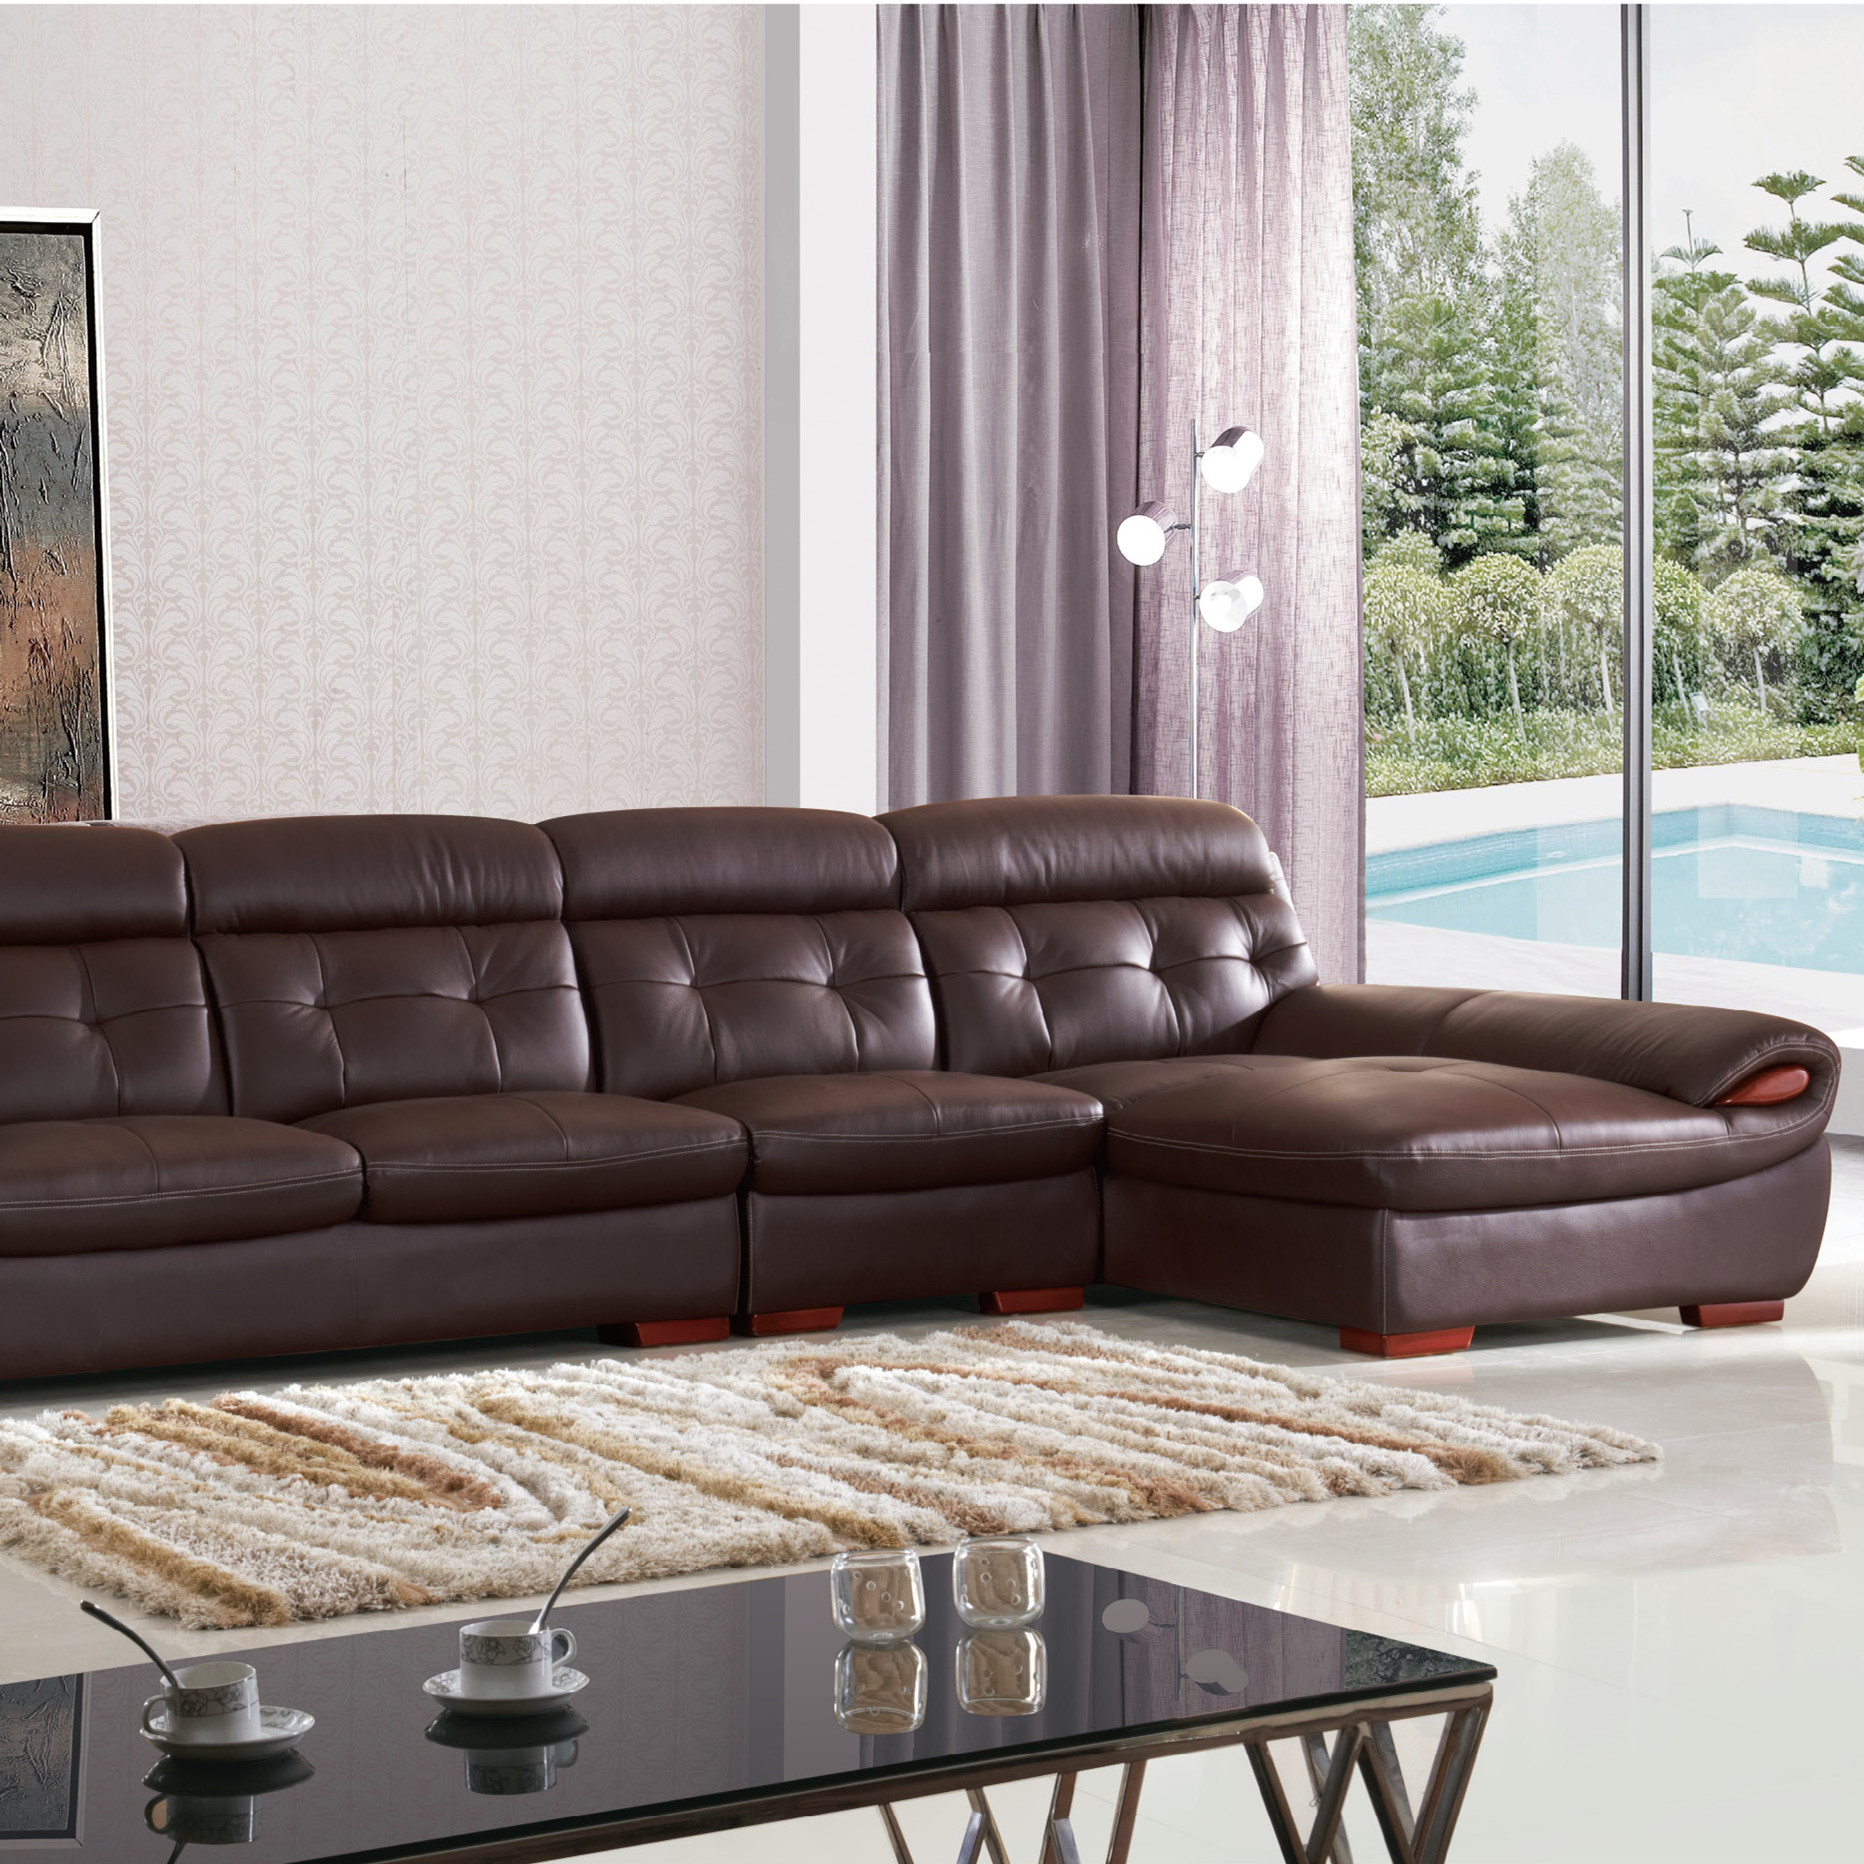 Sala Set L Style On Sales Modern Furniture Italian Style Sectional Sofa Set L Shaped Corner Sofa 8817 Buy Modern Leather Sofa Used Chesterfield Sofa Modern Sofa